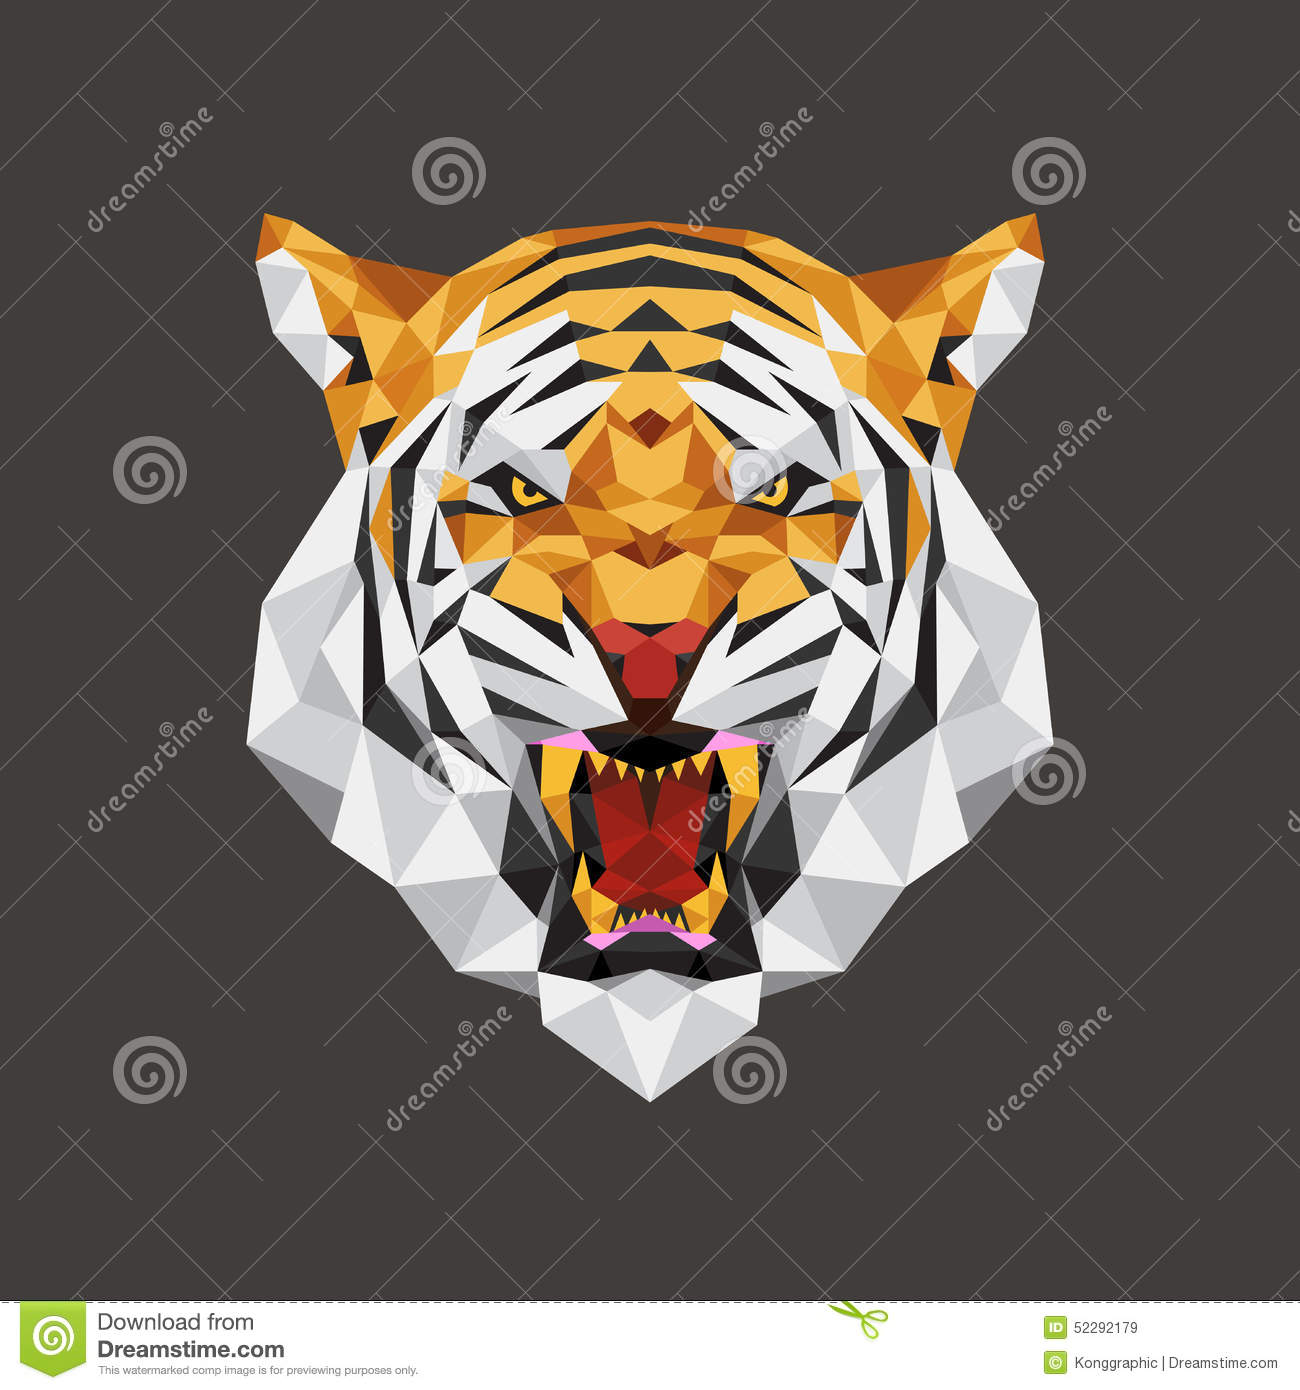 Tiger head triangular icon geometric trendy stock vector image - Tiger Head Polygon Geometric Vector Illustration Royalty Free Stock Images